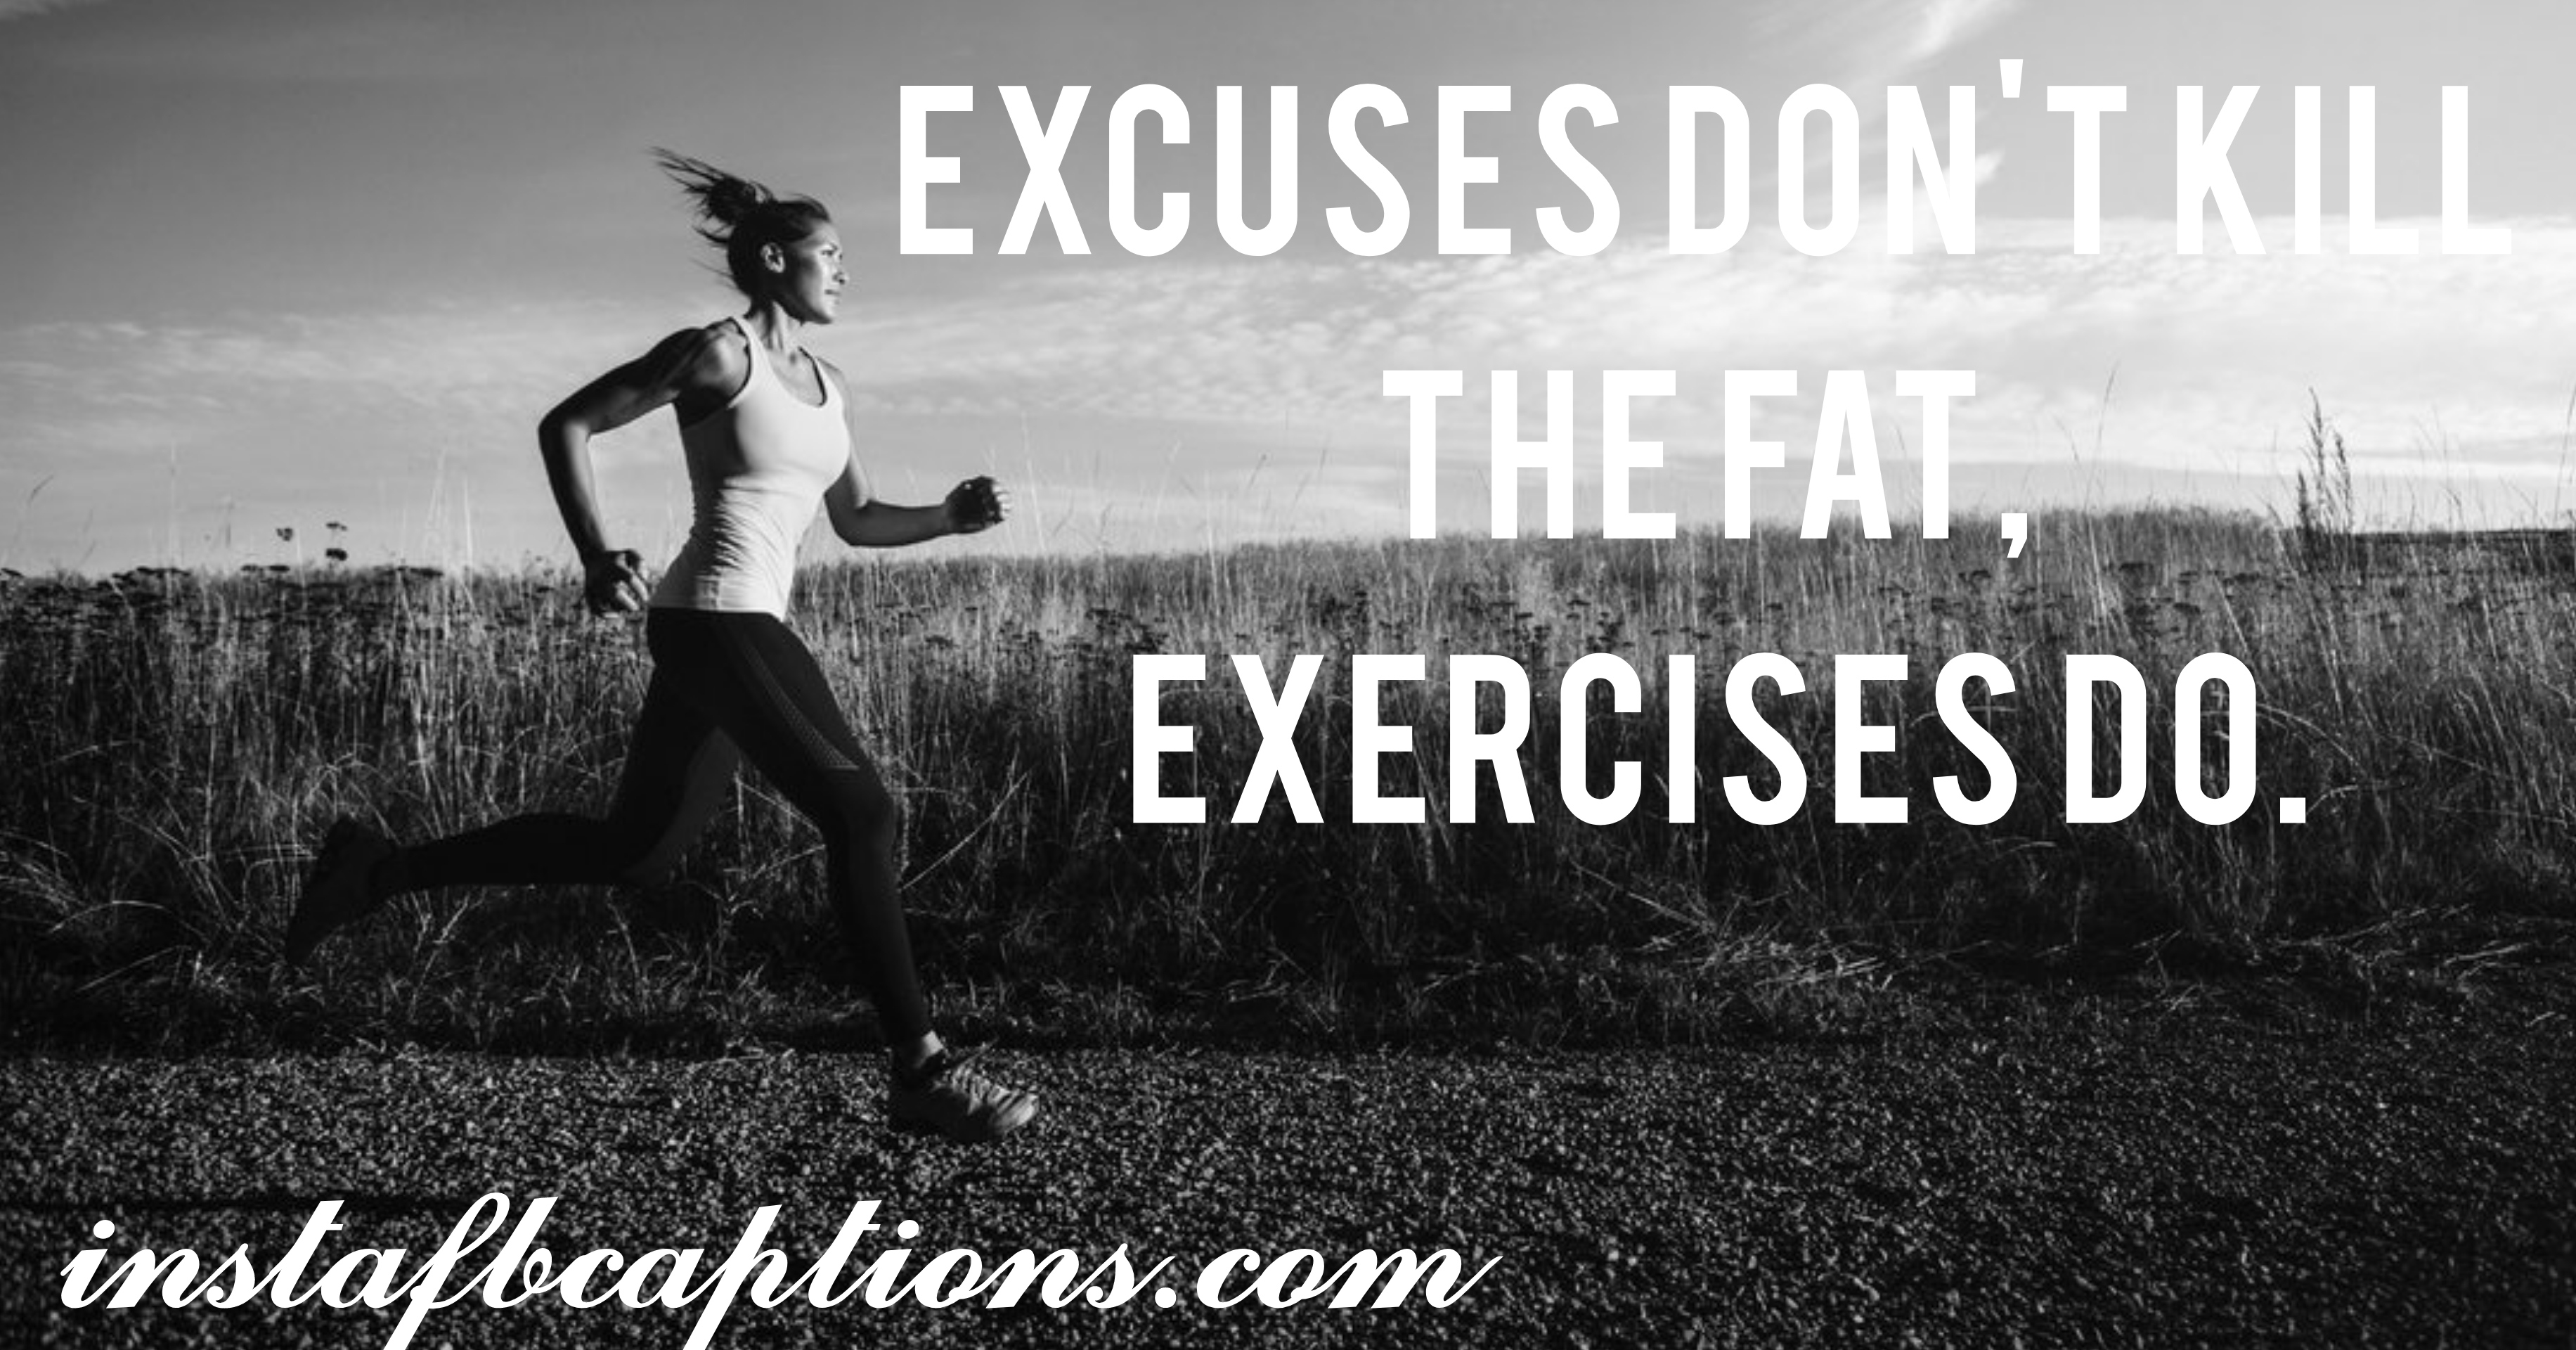 Excuses Don't Kill The Fat, Exercises Do  - Excuses dont kill the fat Exercises do - Fitness Instagram caption||(Gym Goals Home Workout)